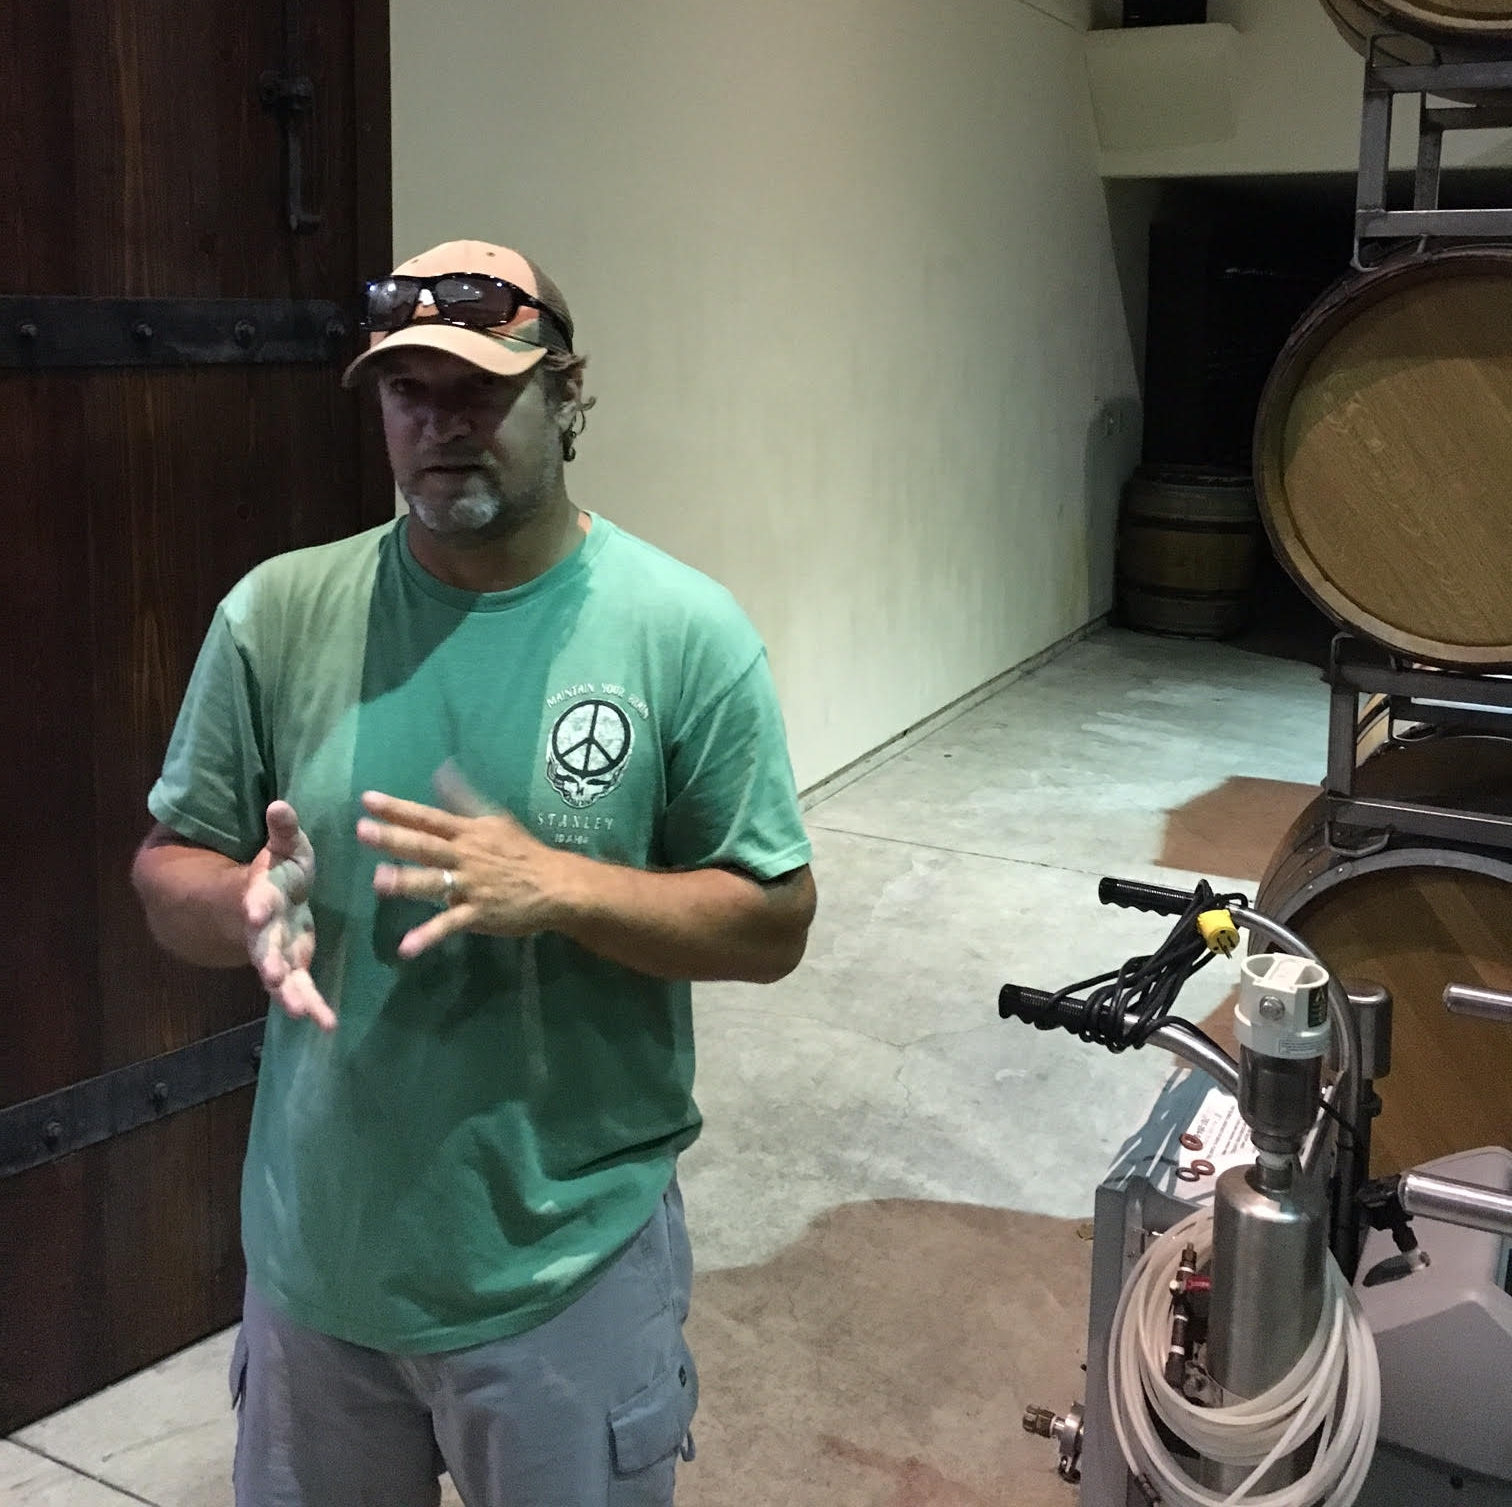 We had an awesome time hanging out wth Melville head winemaker, Chad Melville.